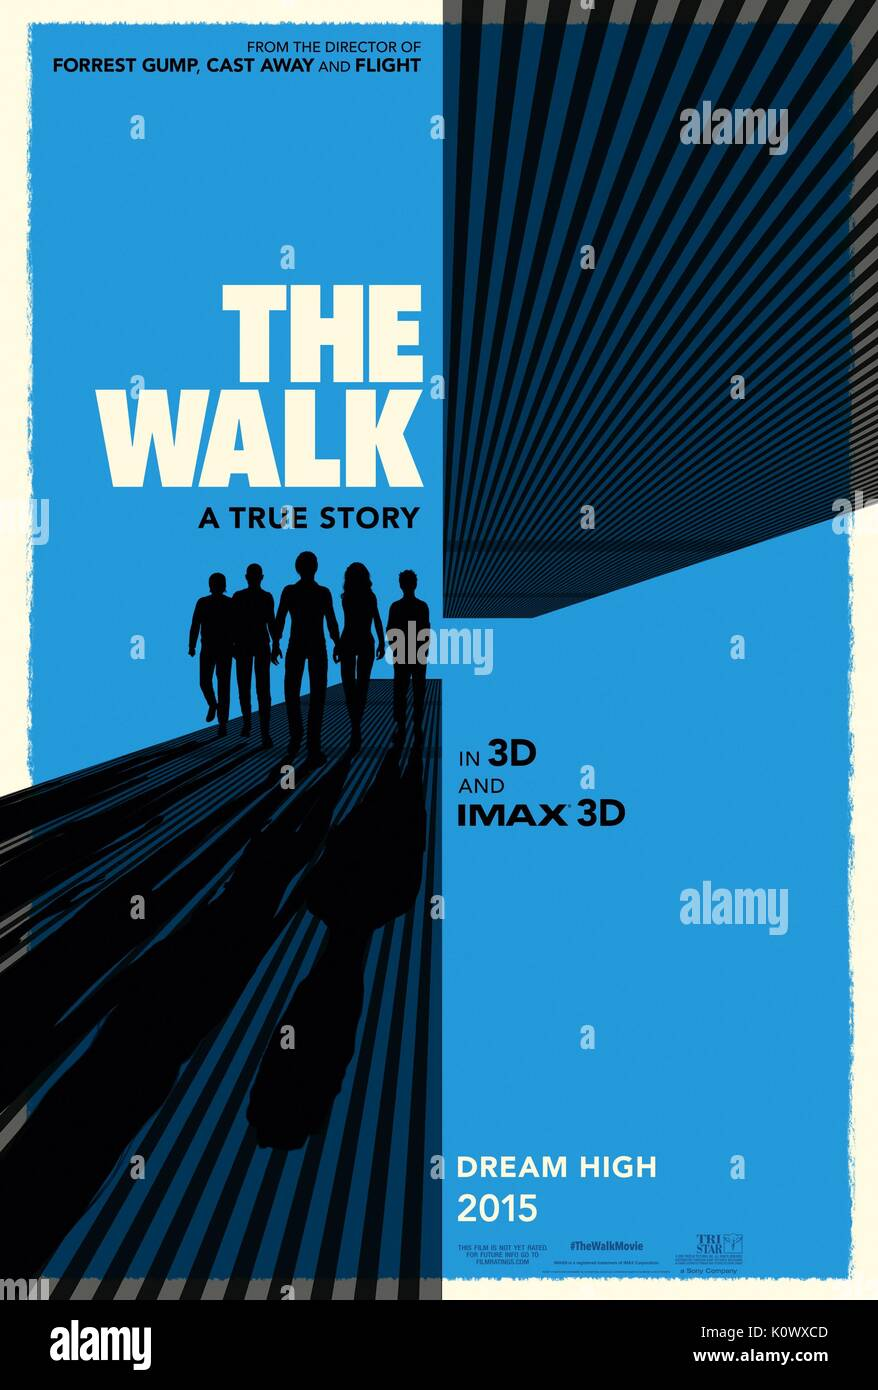 MOVIE POSTER THE WALK (2015) - Stock Image